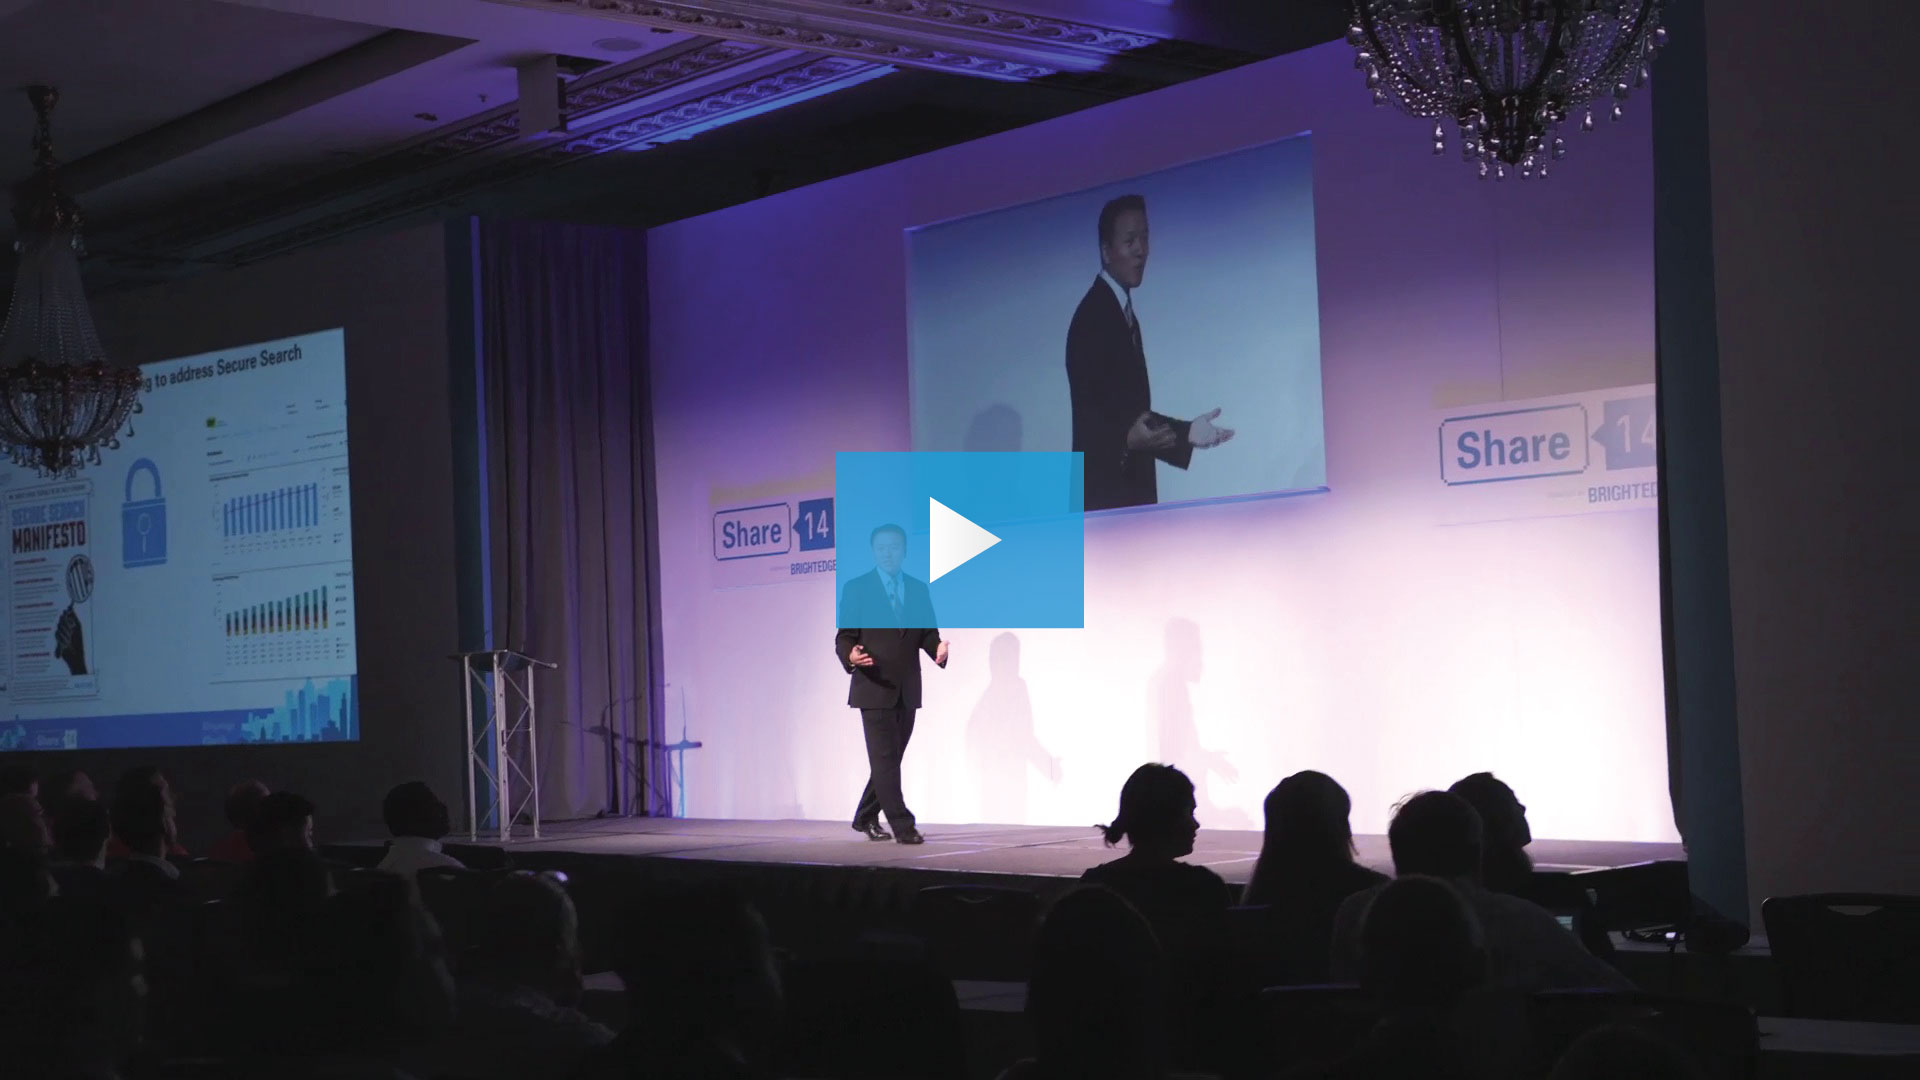 Share 14 CEO keynote video